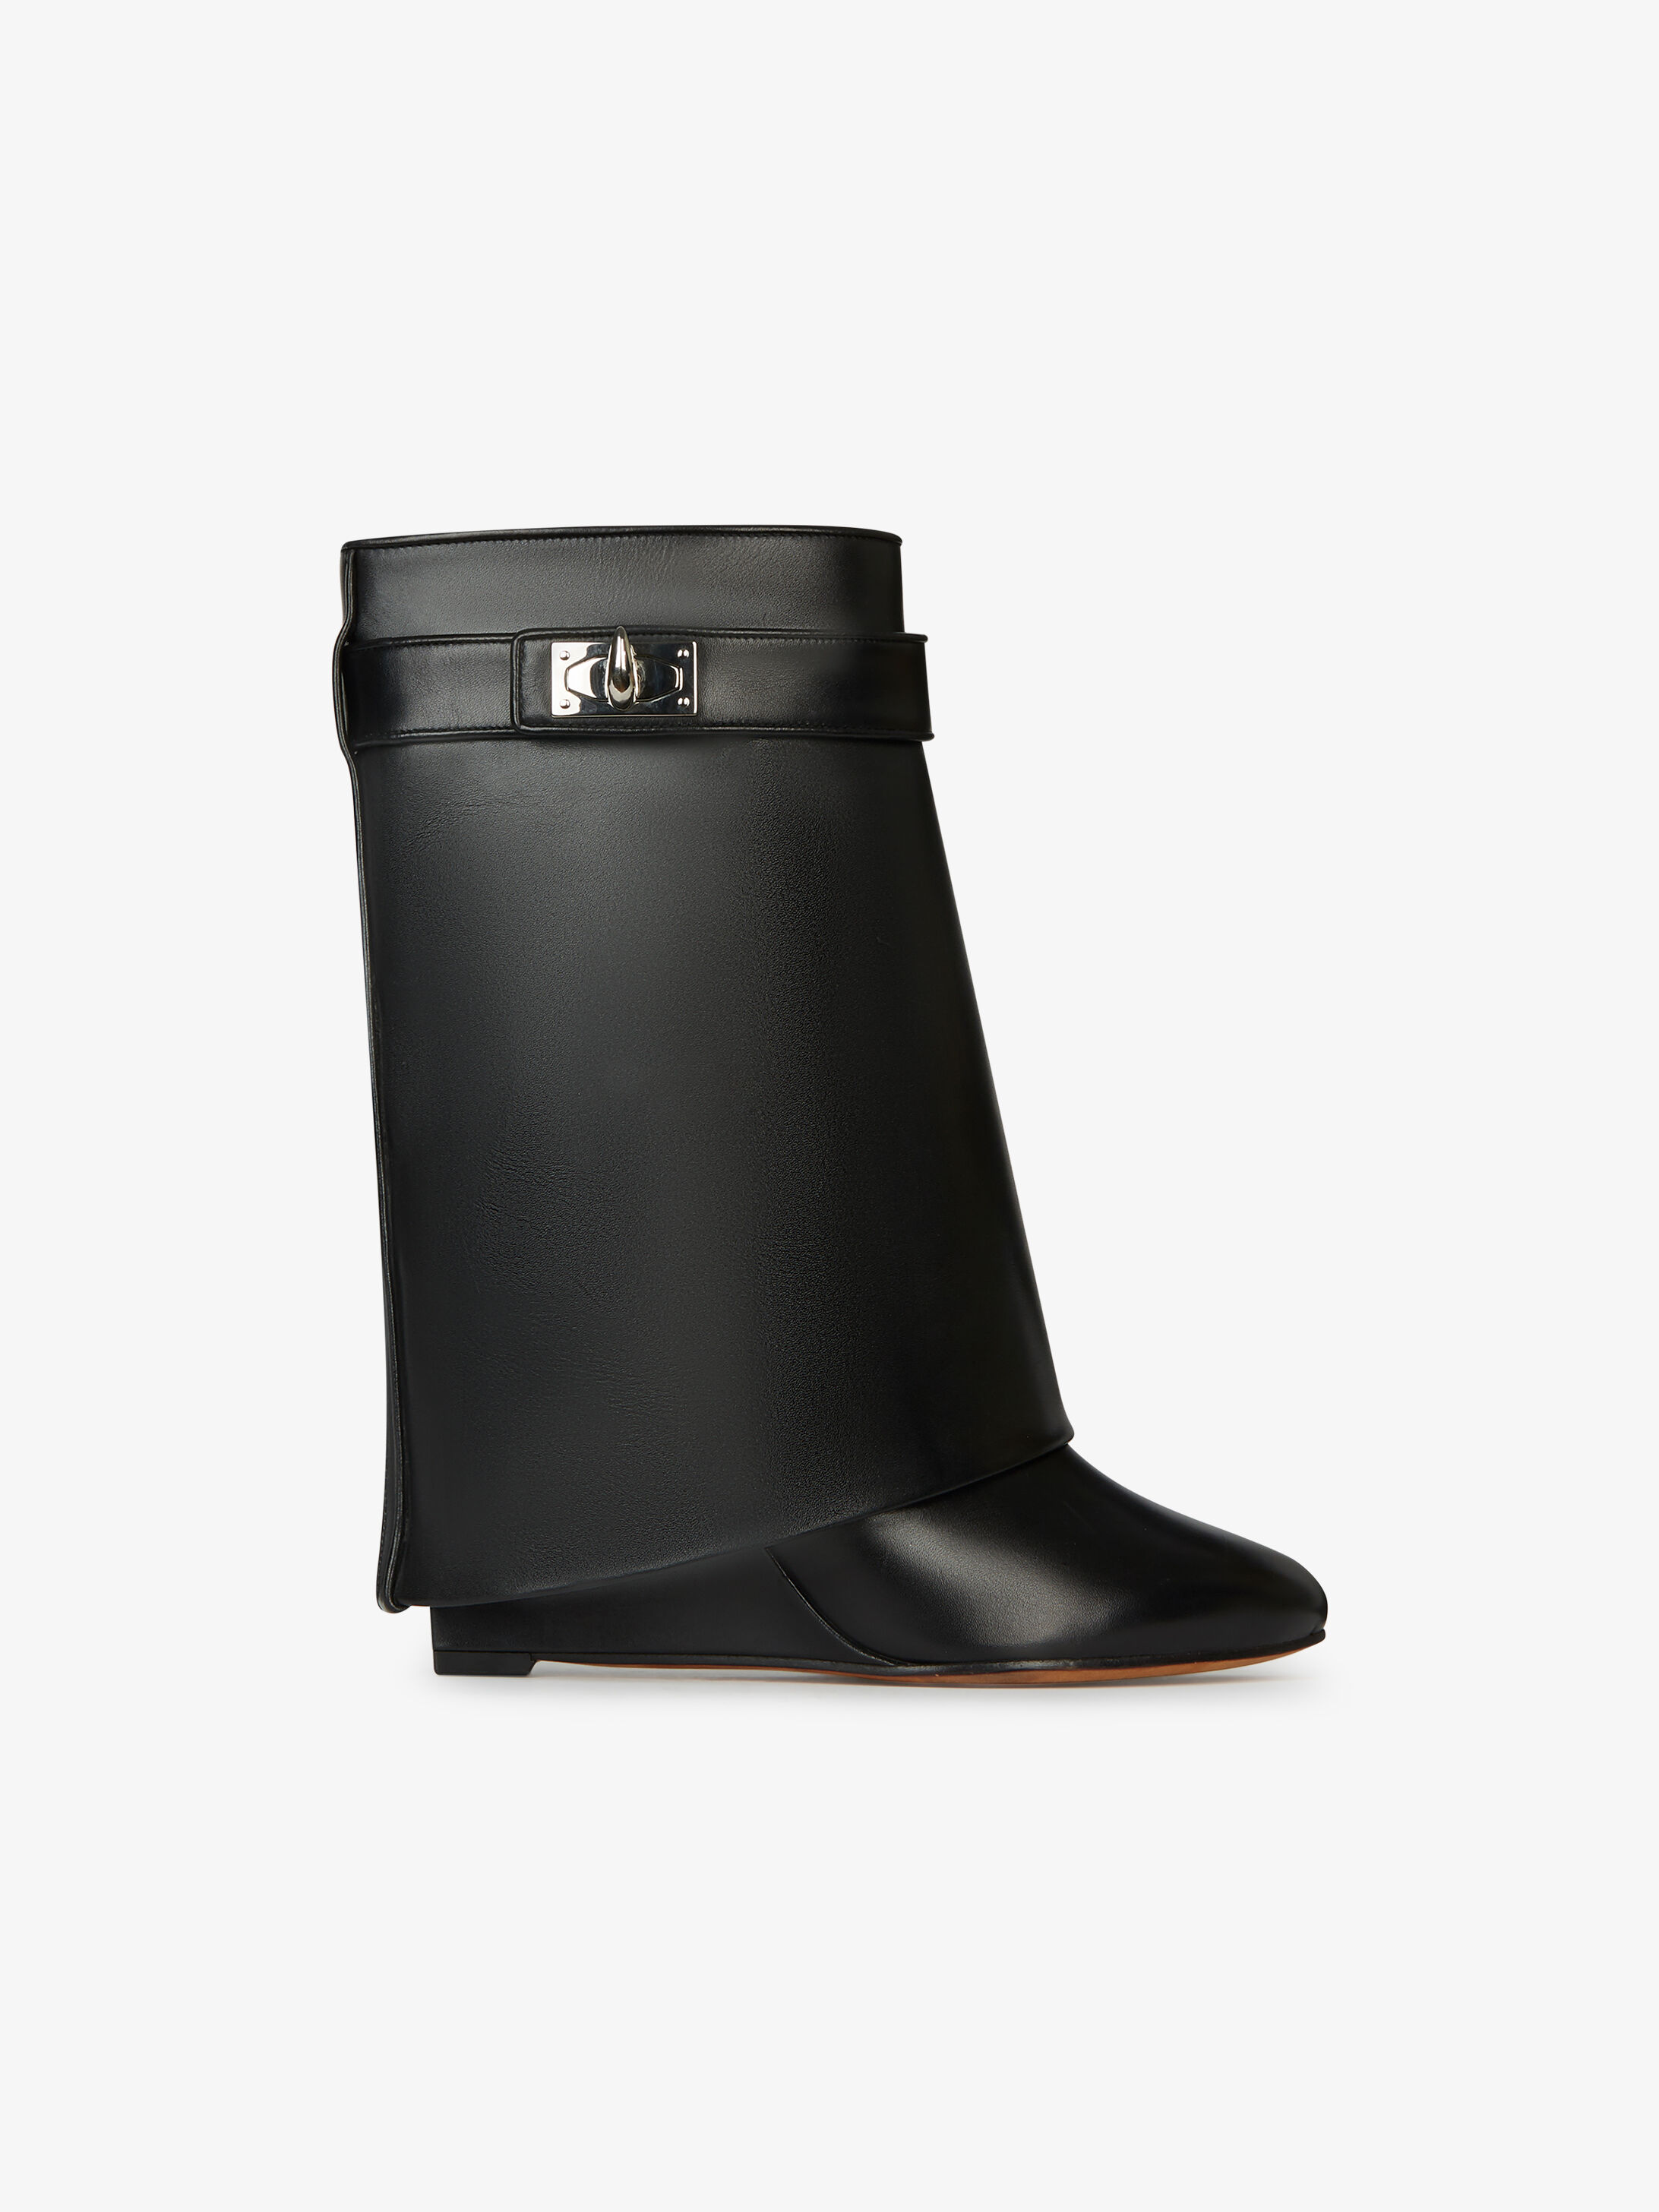 Women's Boots collection by Givenchy. | GIVENCHY Paris